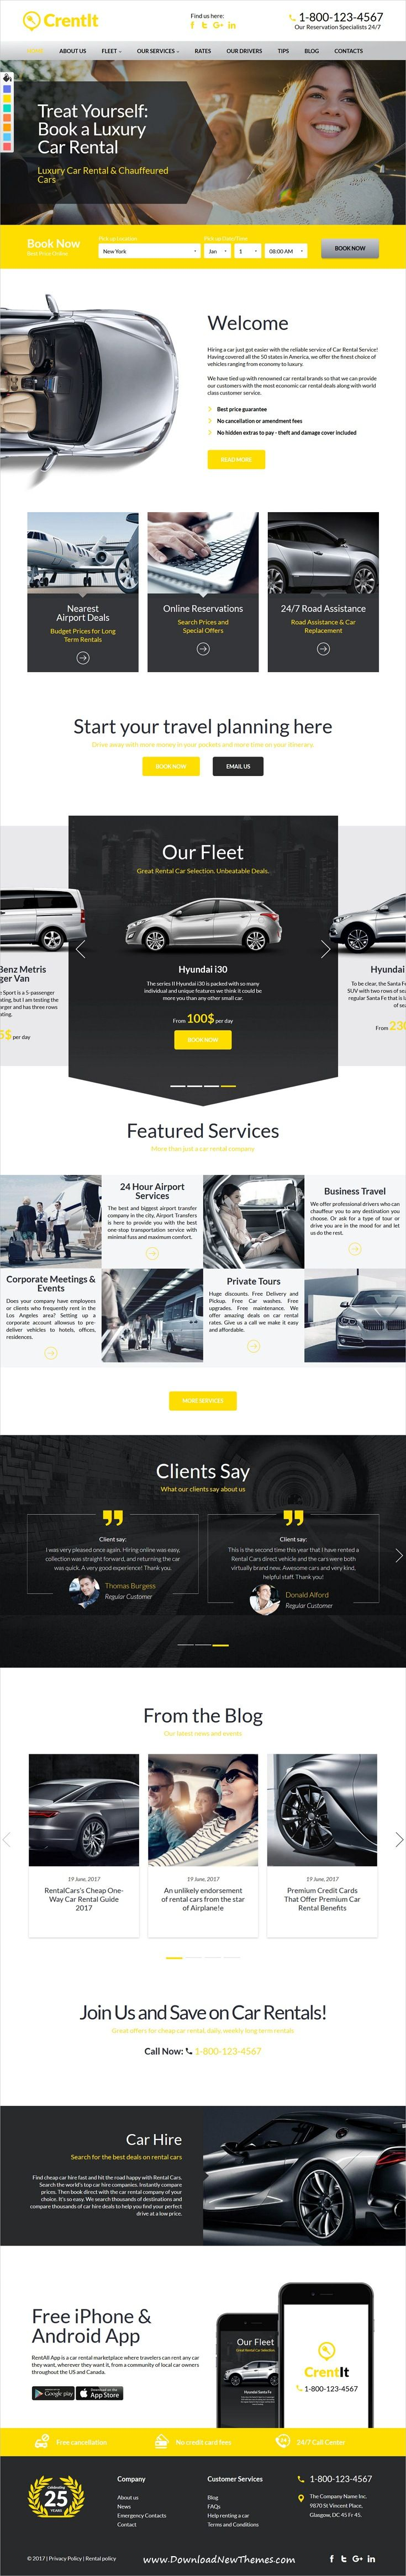 Crentit Is Clean And Modern Design Responsive Wordpress Theme For Car Rental And Booking Service Companies Wordpress Theme Responsive Wordpress Theme Theme